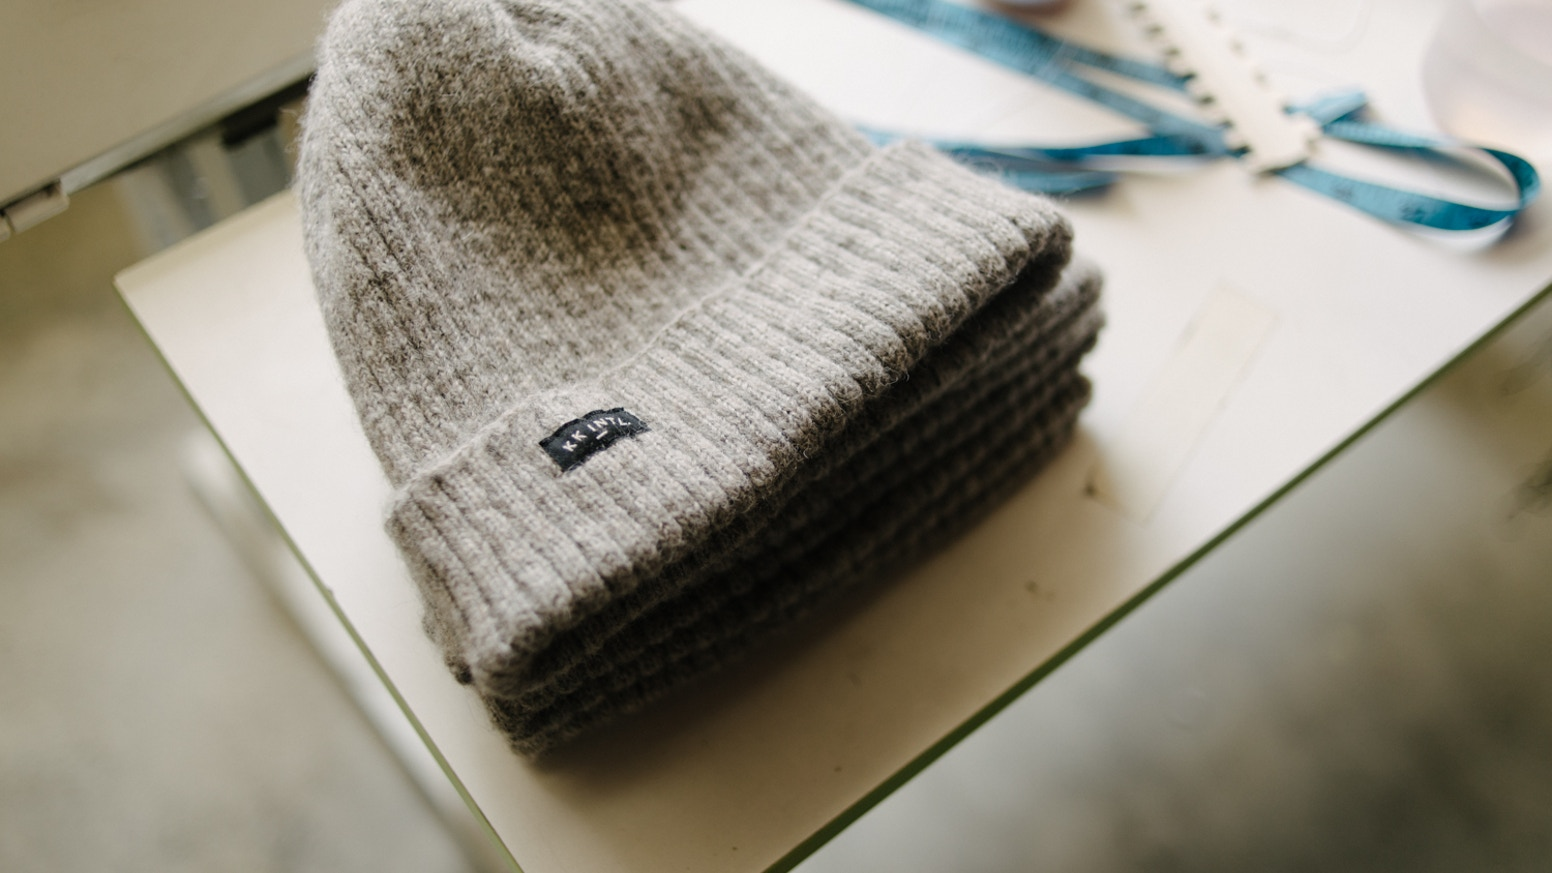 Well-designed and individually made, this beanie was created with careful considerations for its social and environmental impact.